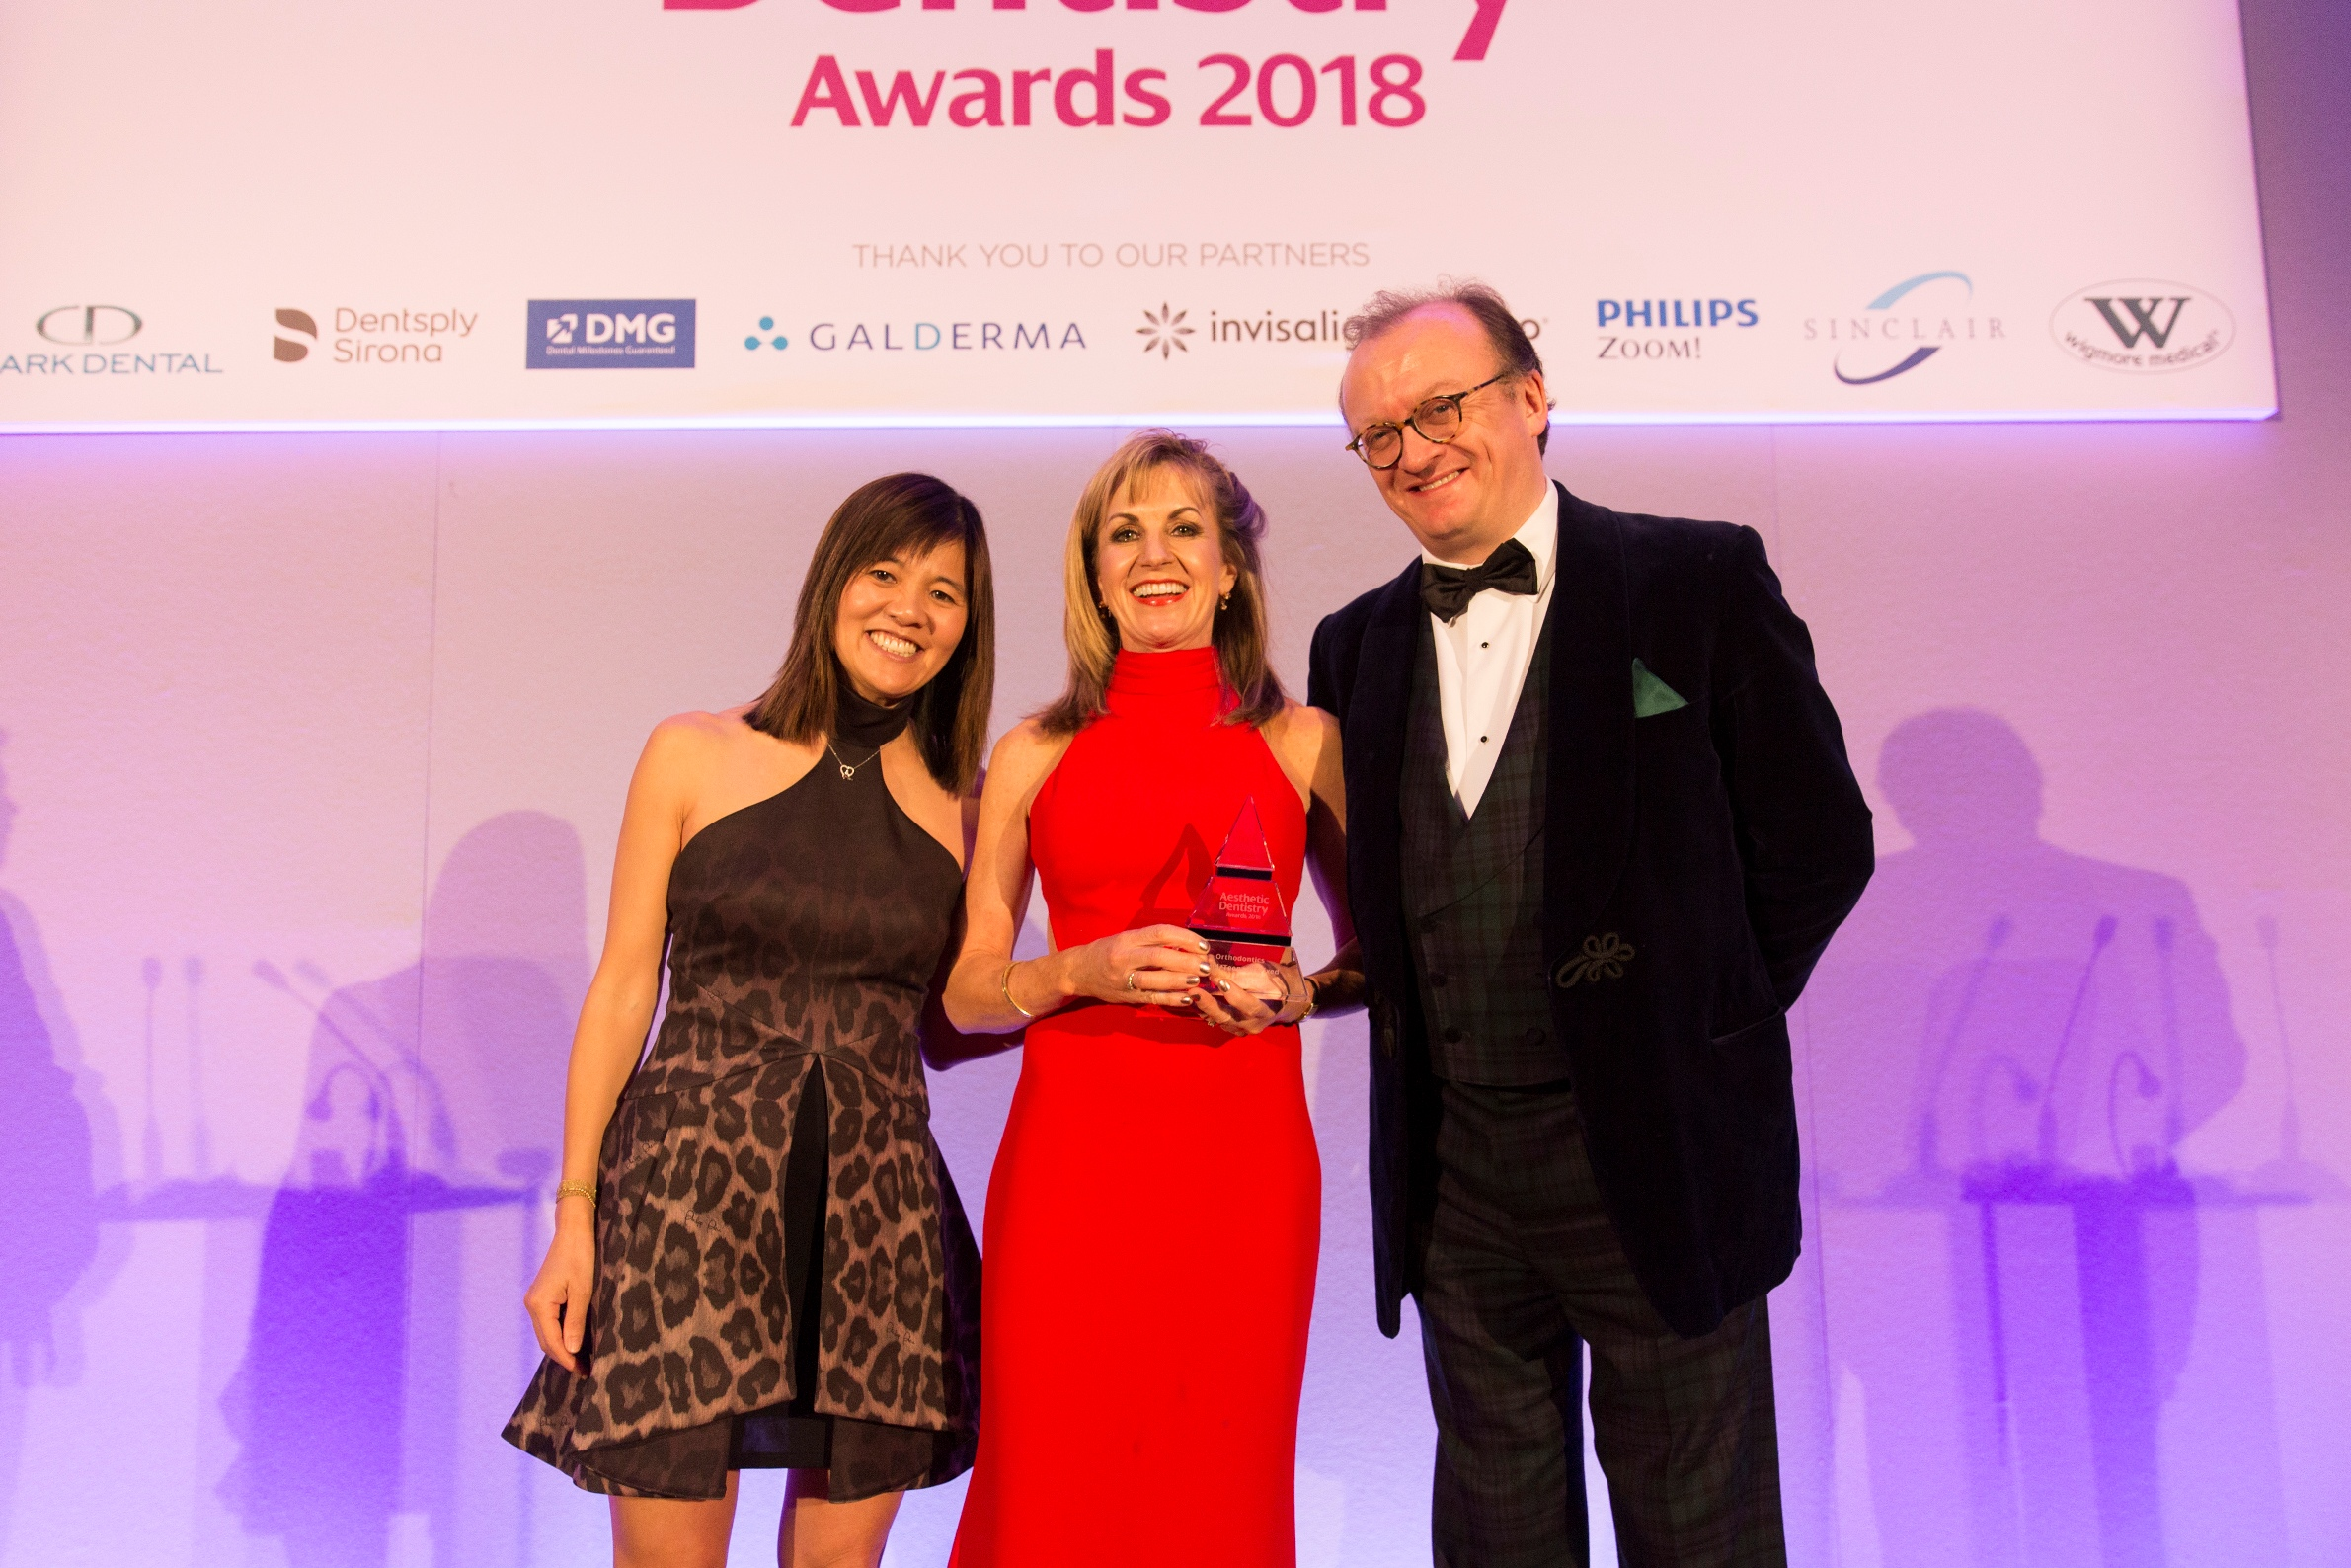 71cbb62a Wakefield orthodontist snaps up two top awards - St Michael's ...